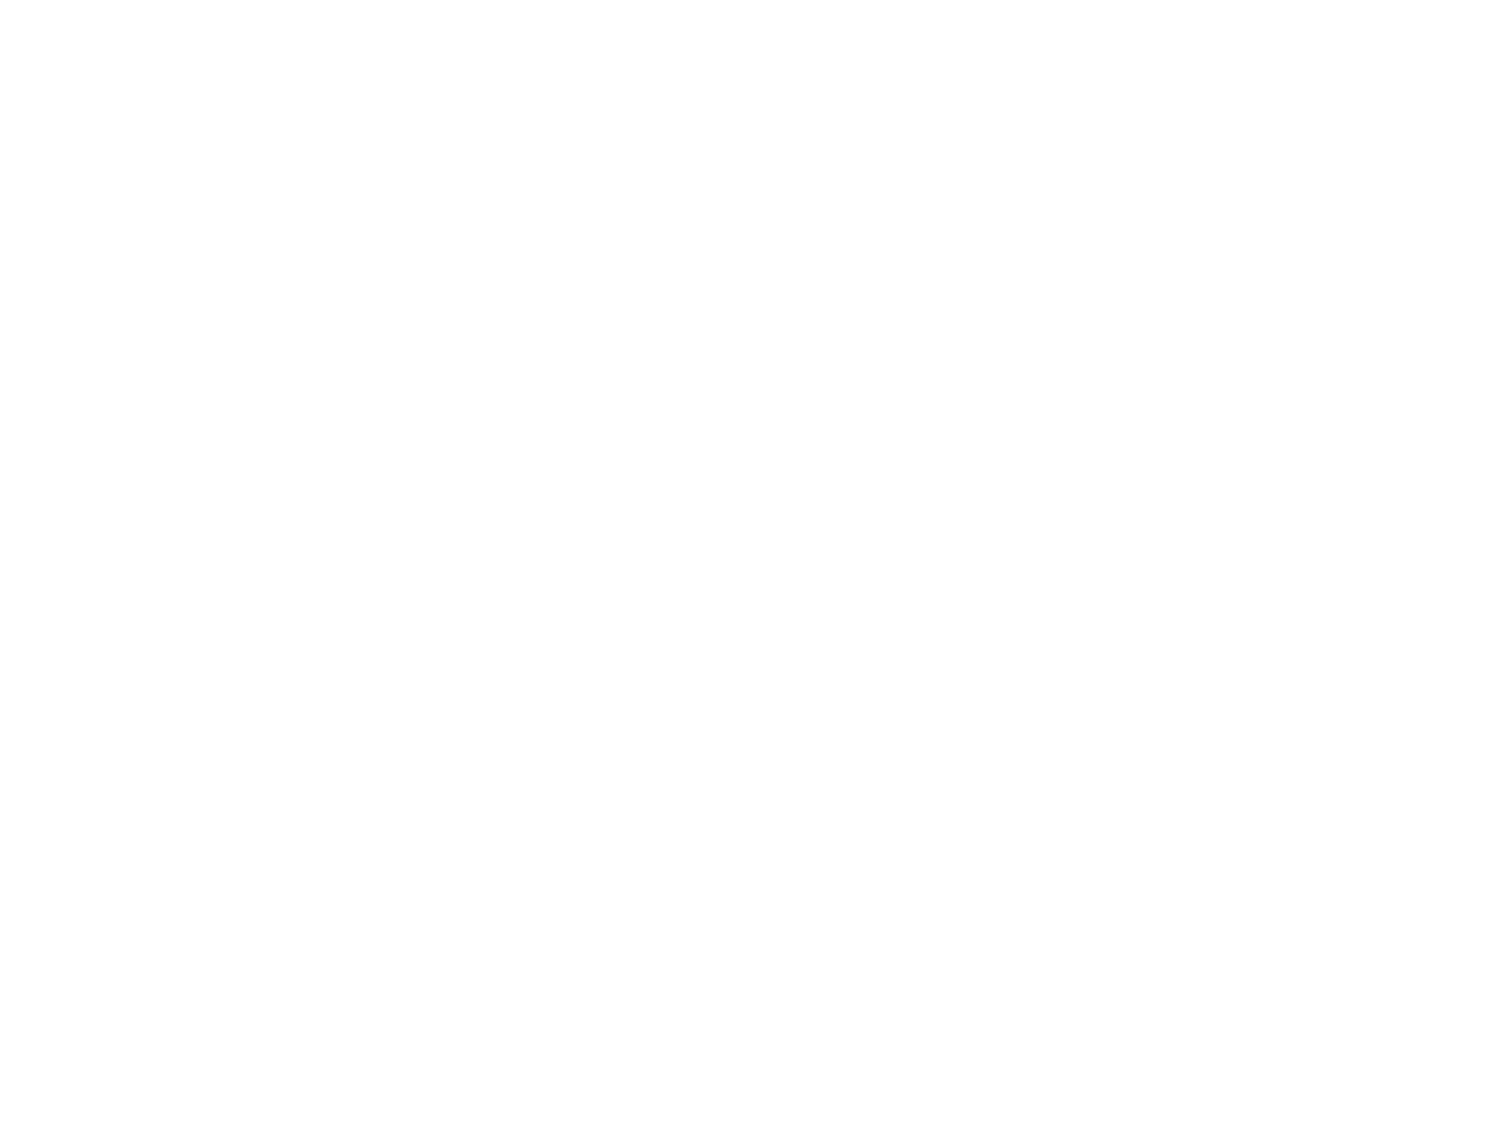 BASE FLOW YOGA